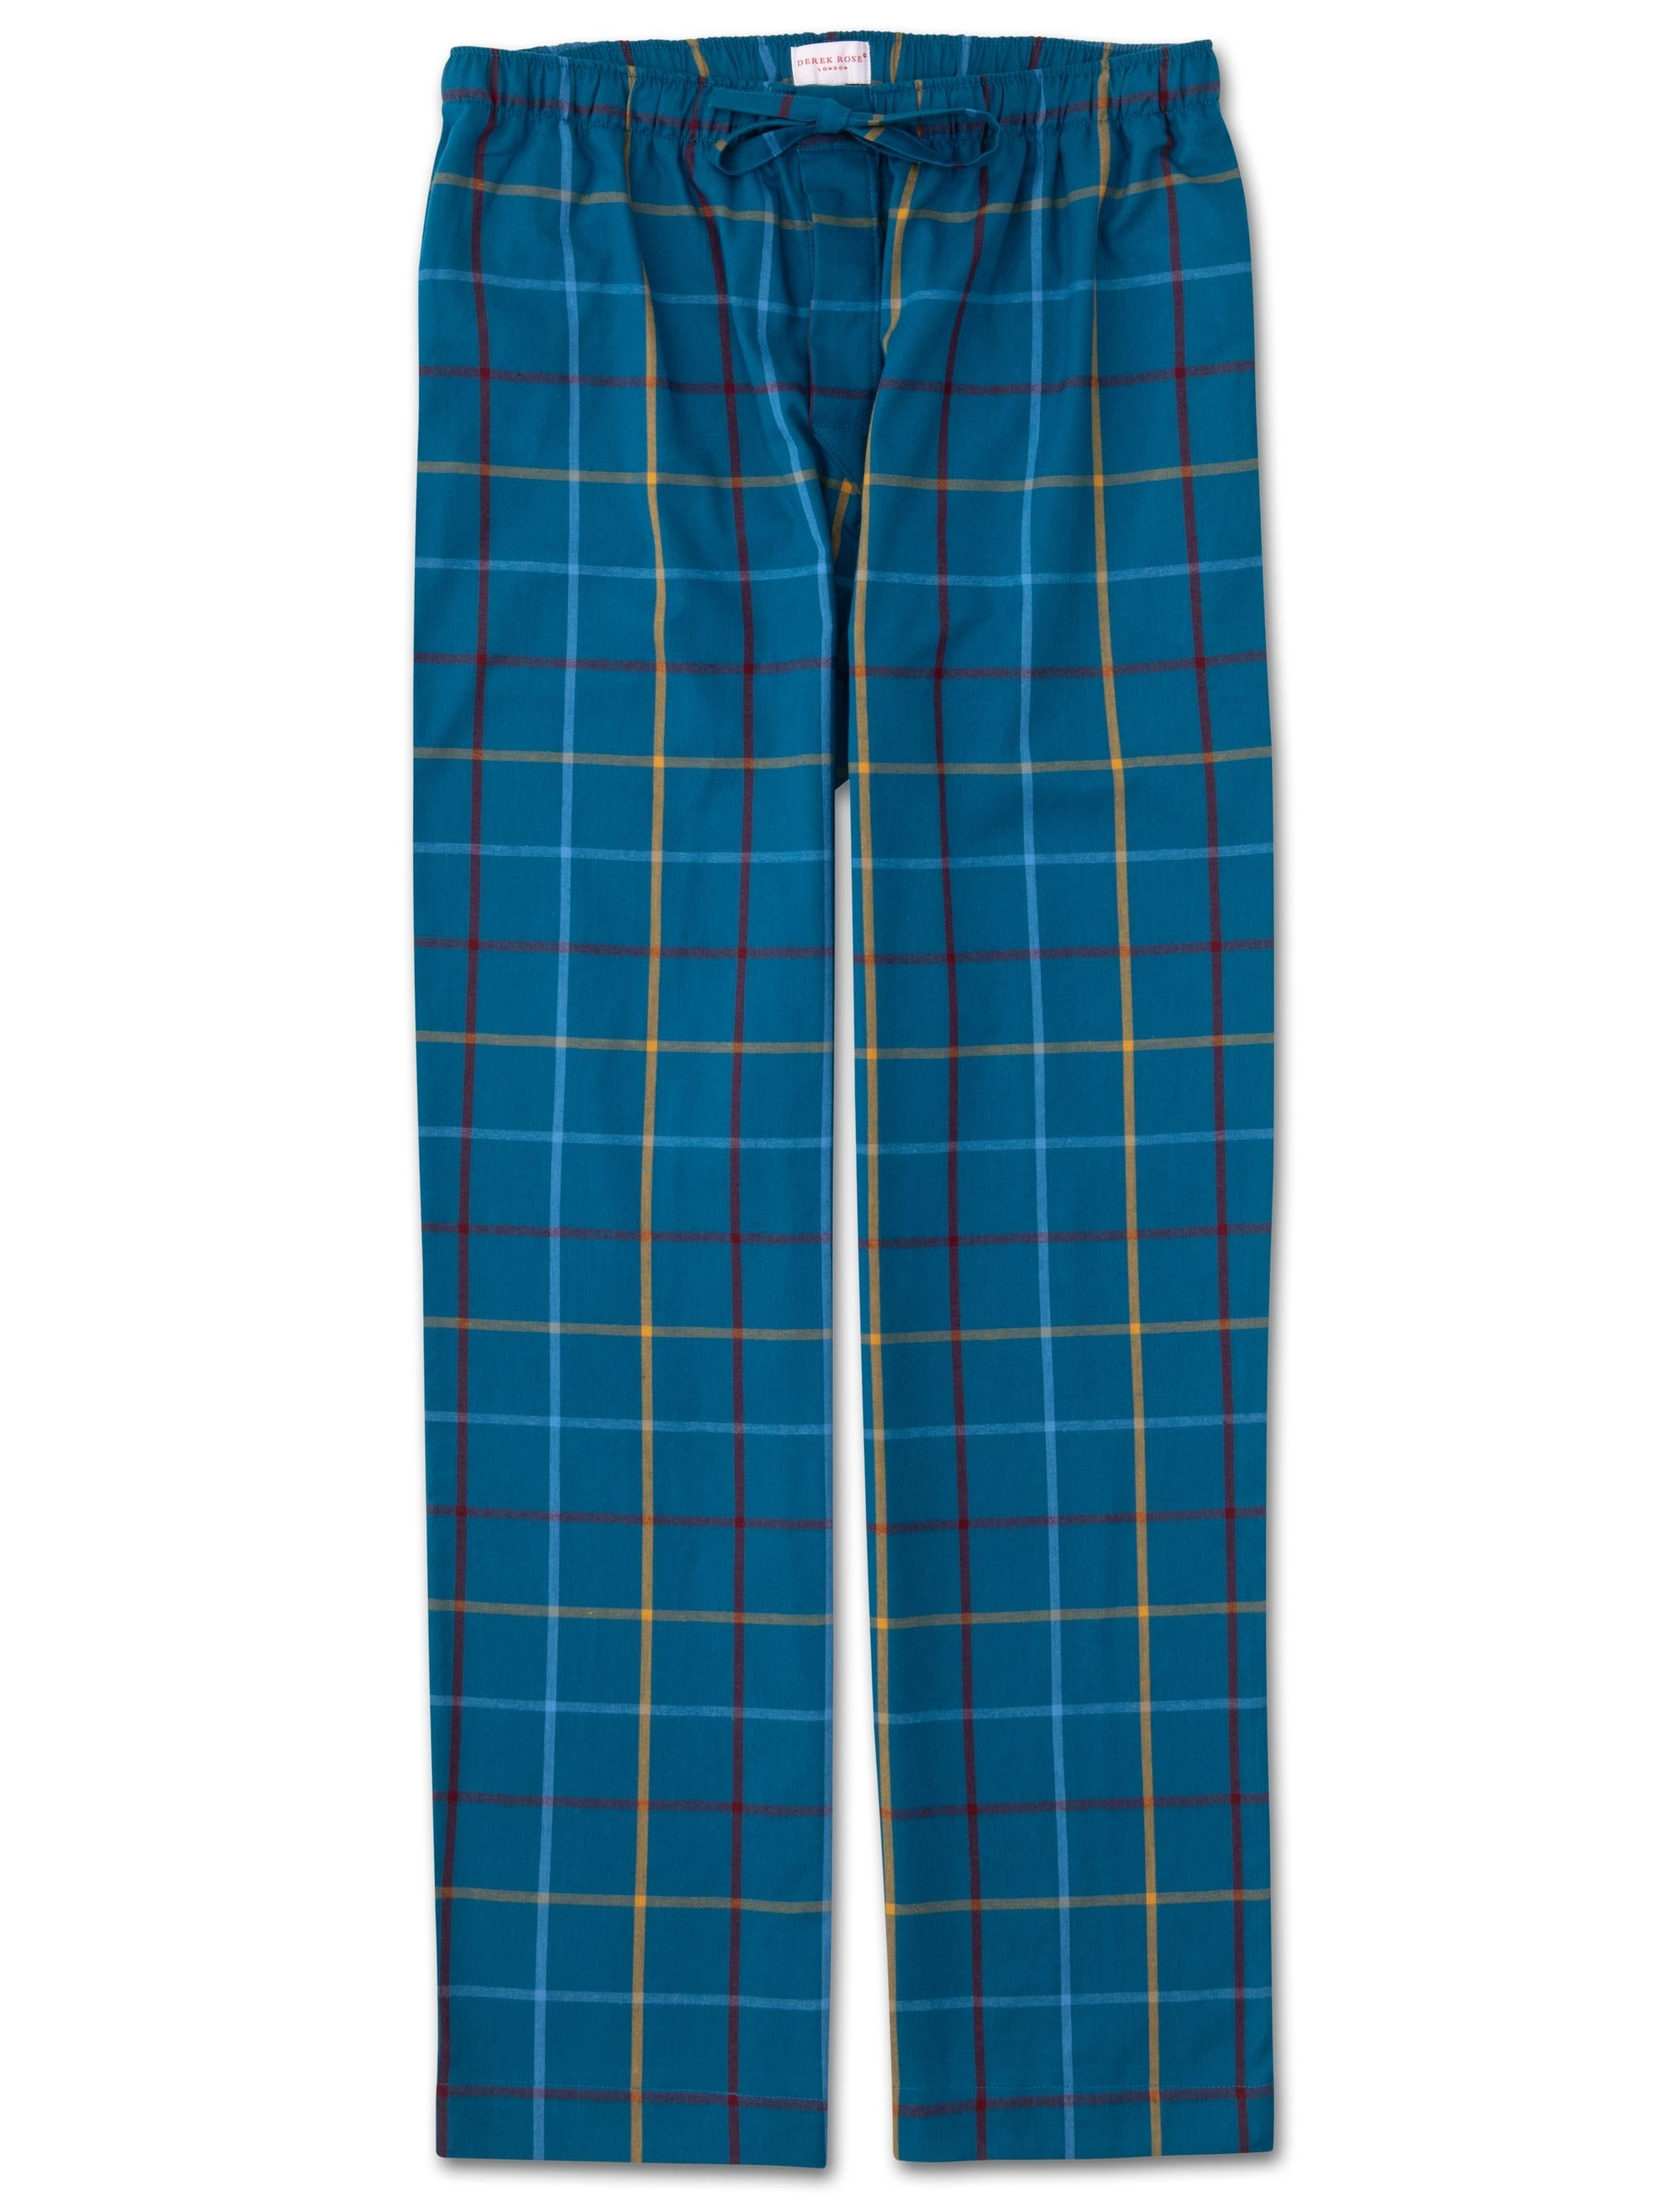 Men's Lounge Trousers Ranga 37 Brushed Cotton Check Multi